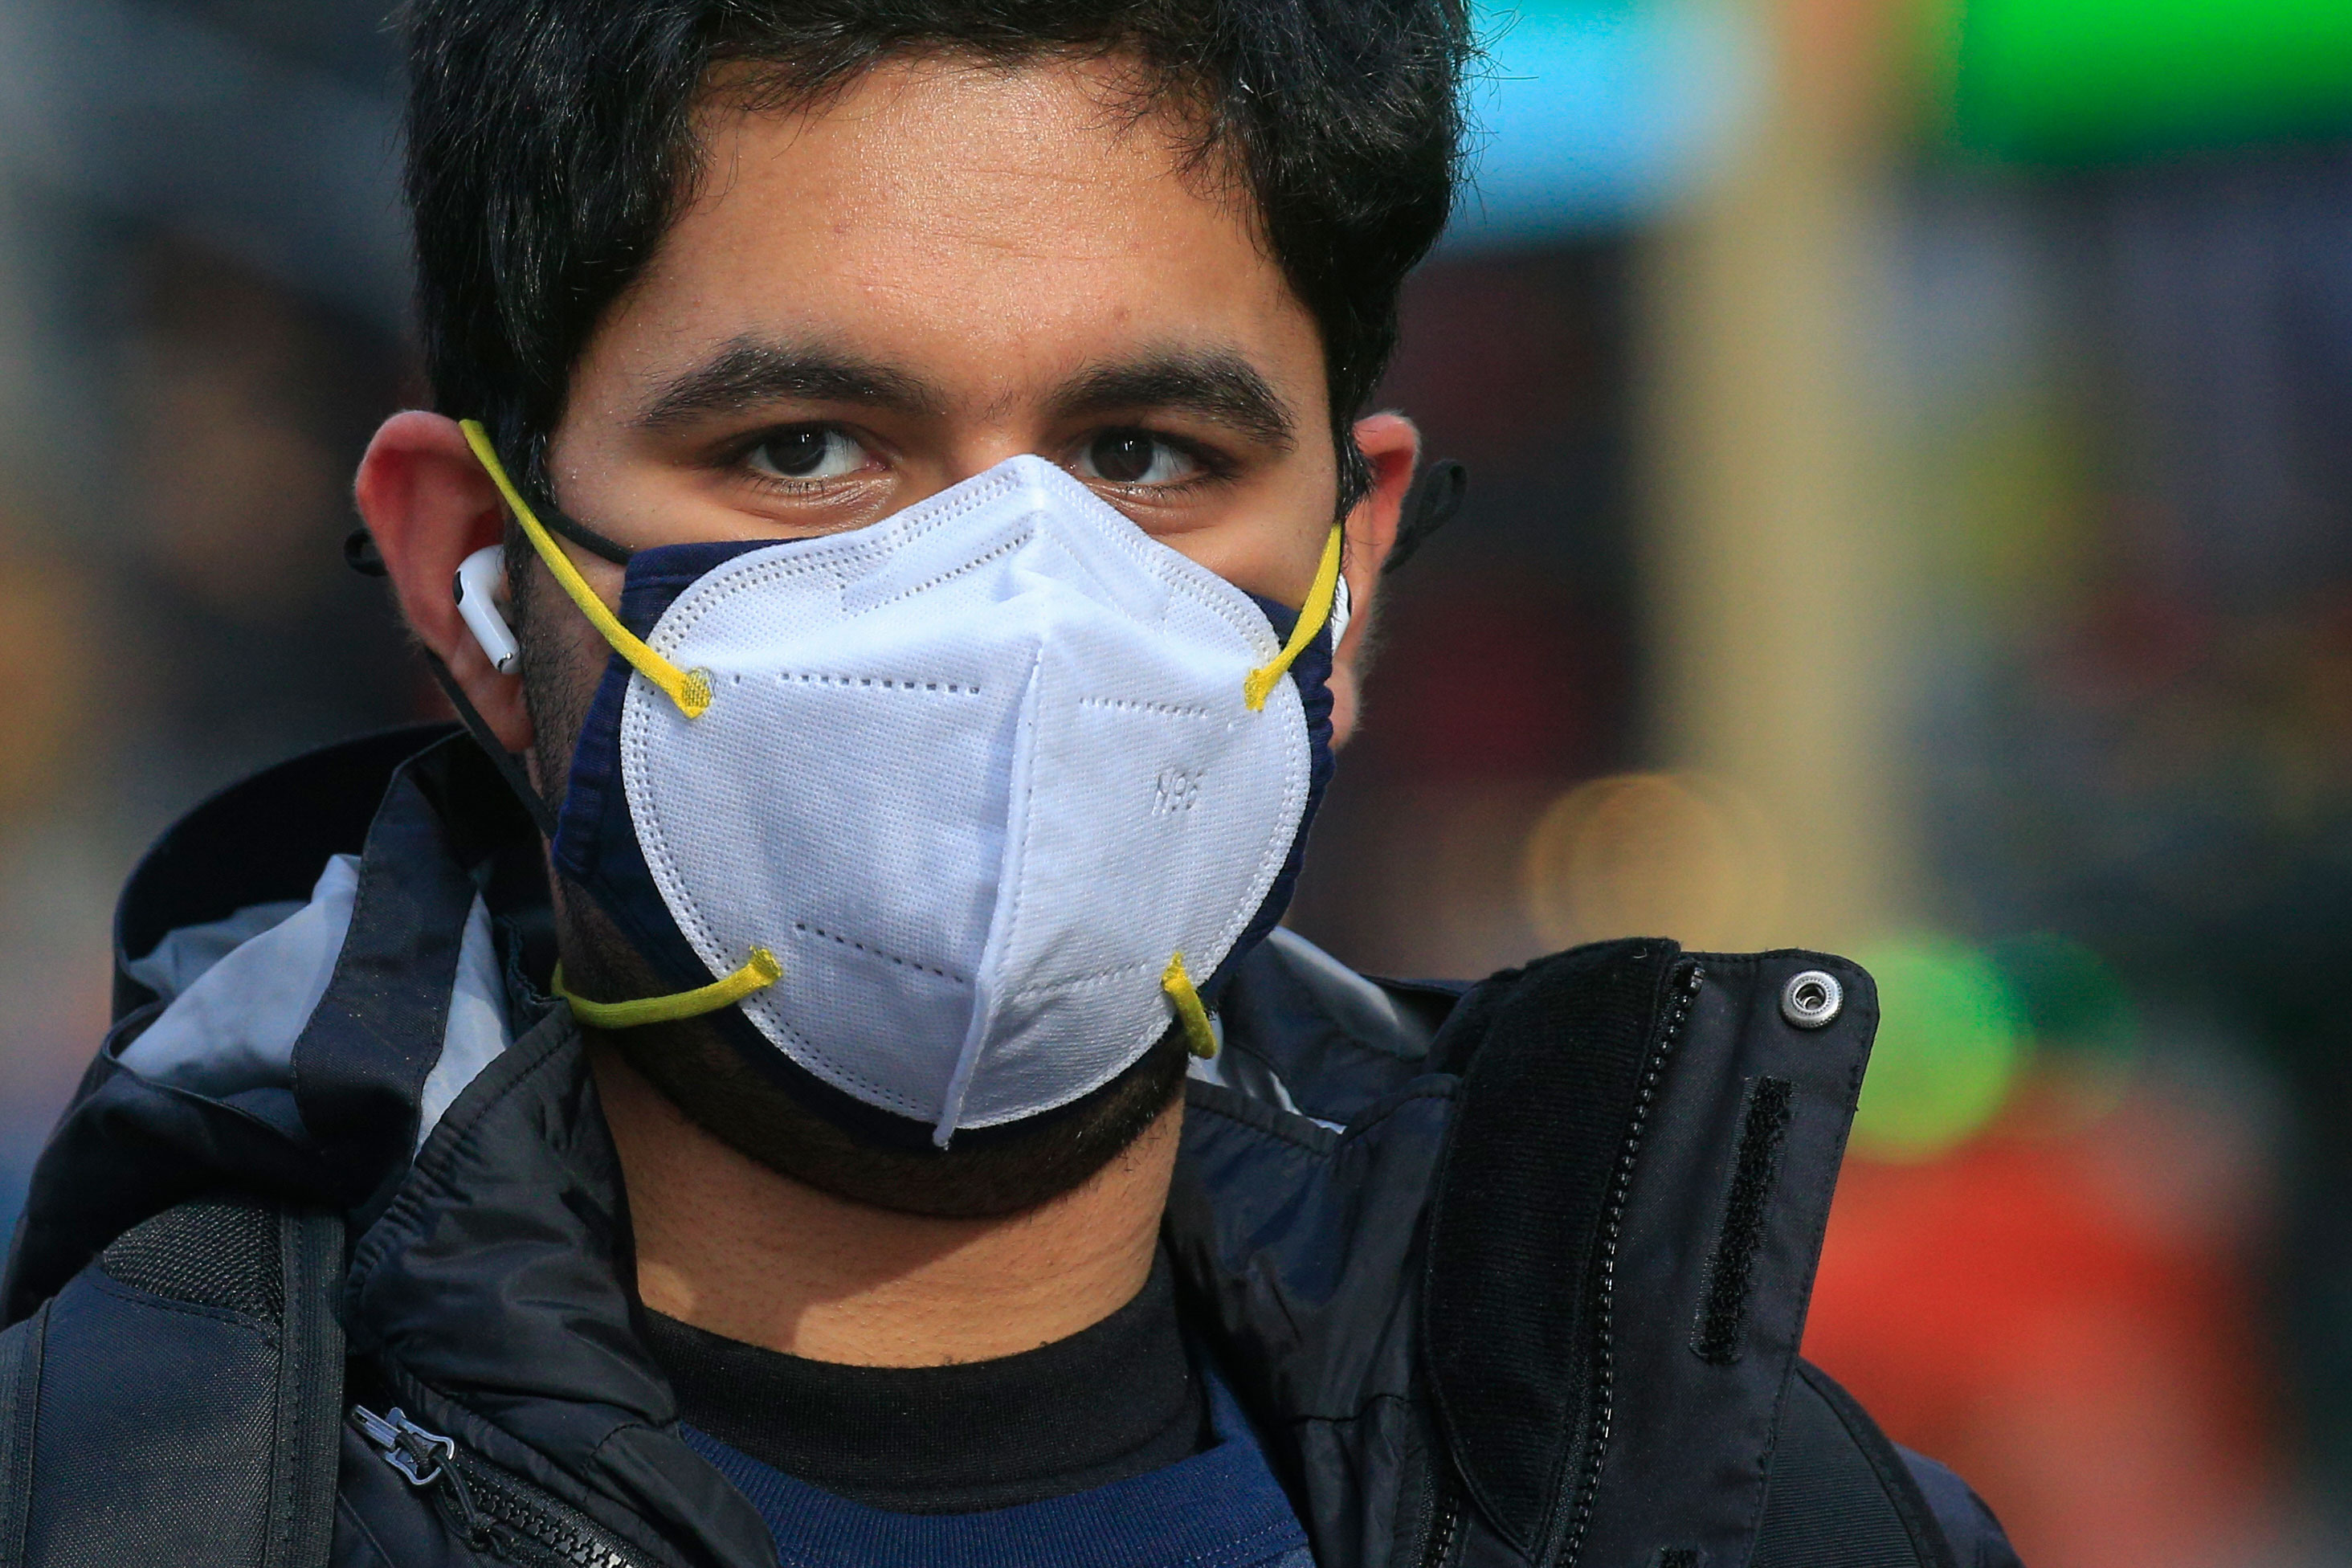 A man wears two masks as he visits Times Square in New York on December 10.